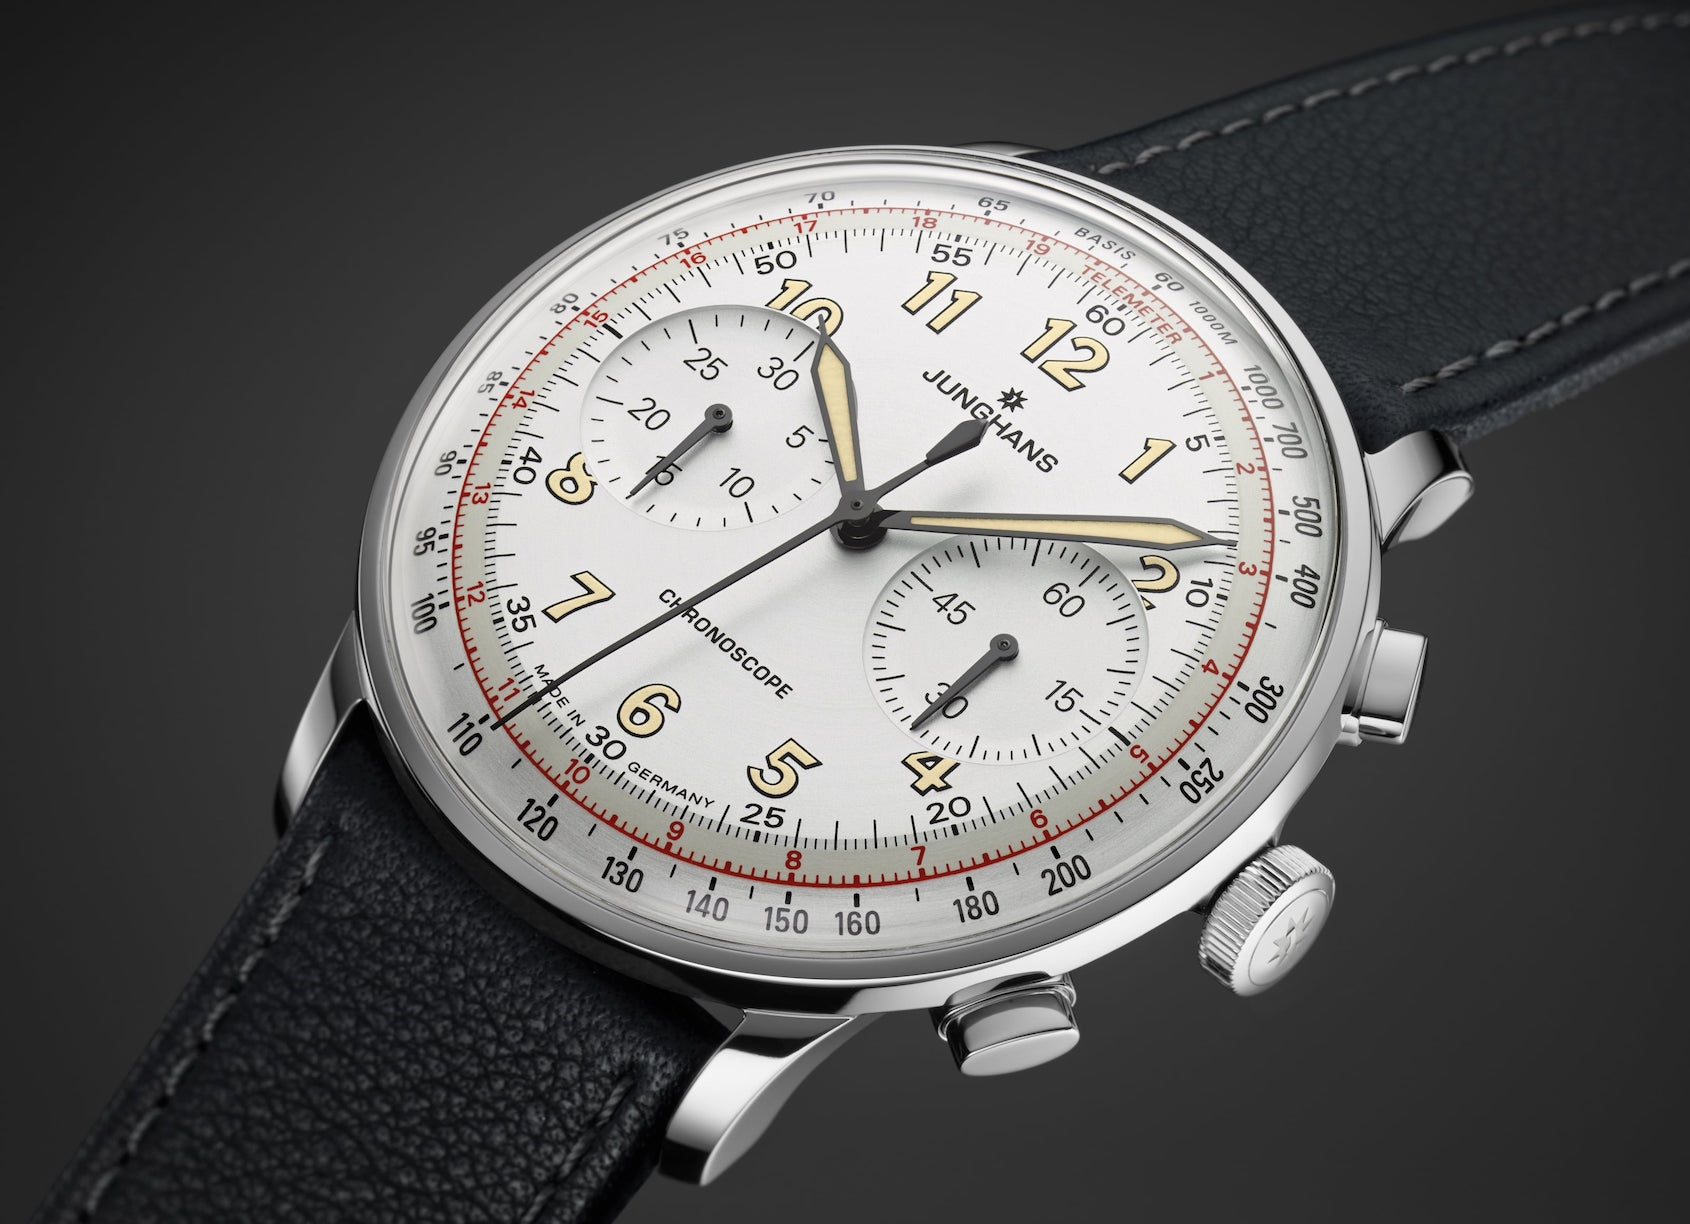 The ultimate watch glossary – chronograph scales. What they mean and how they work